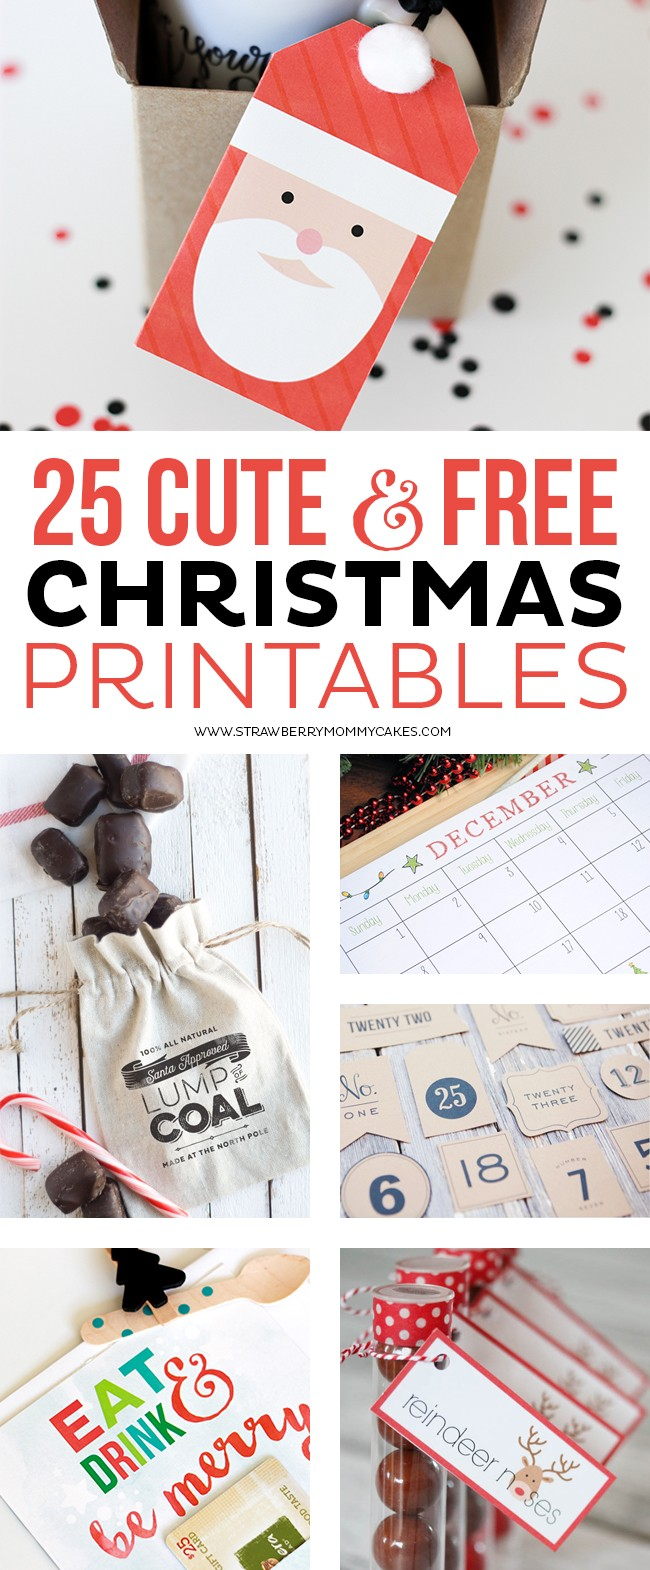 Check out 25 Cute and FREE Christmas Printables!